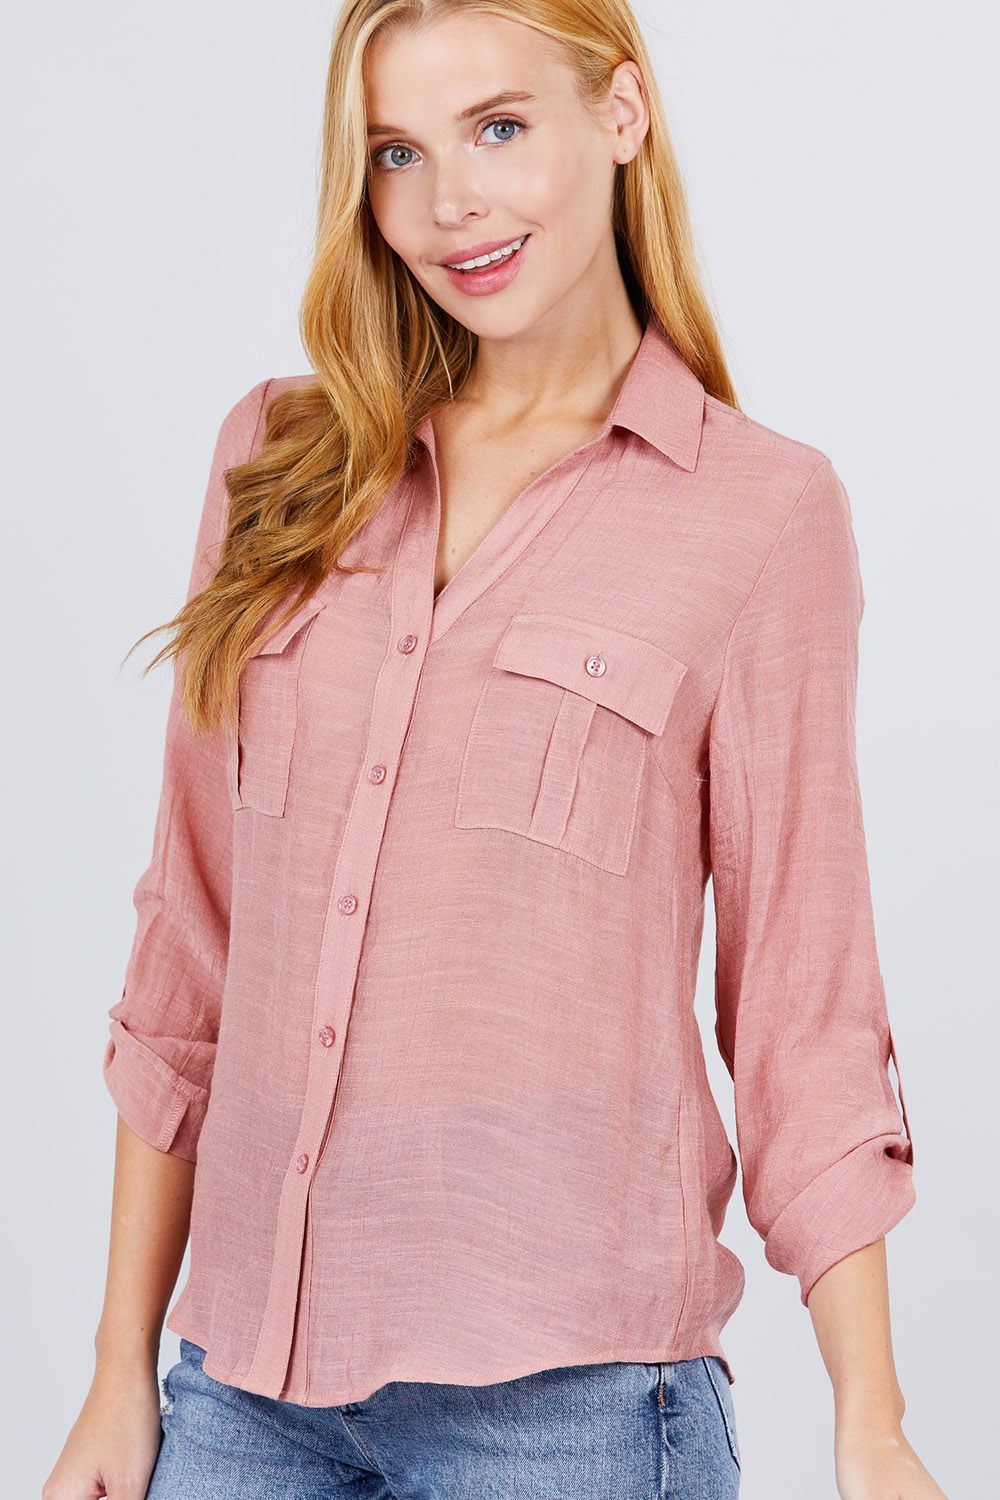 3/4 Roll Up Sleeve With Pocket Woven Shirts - Kendalls Deals